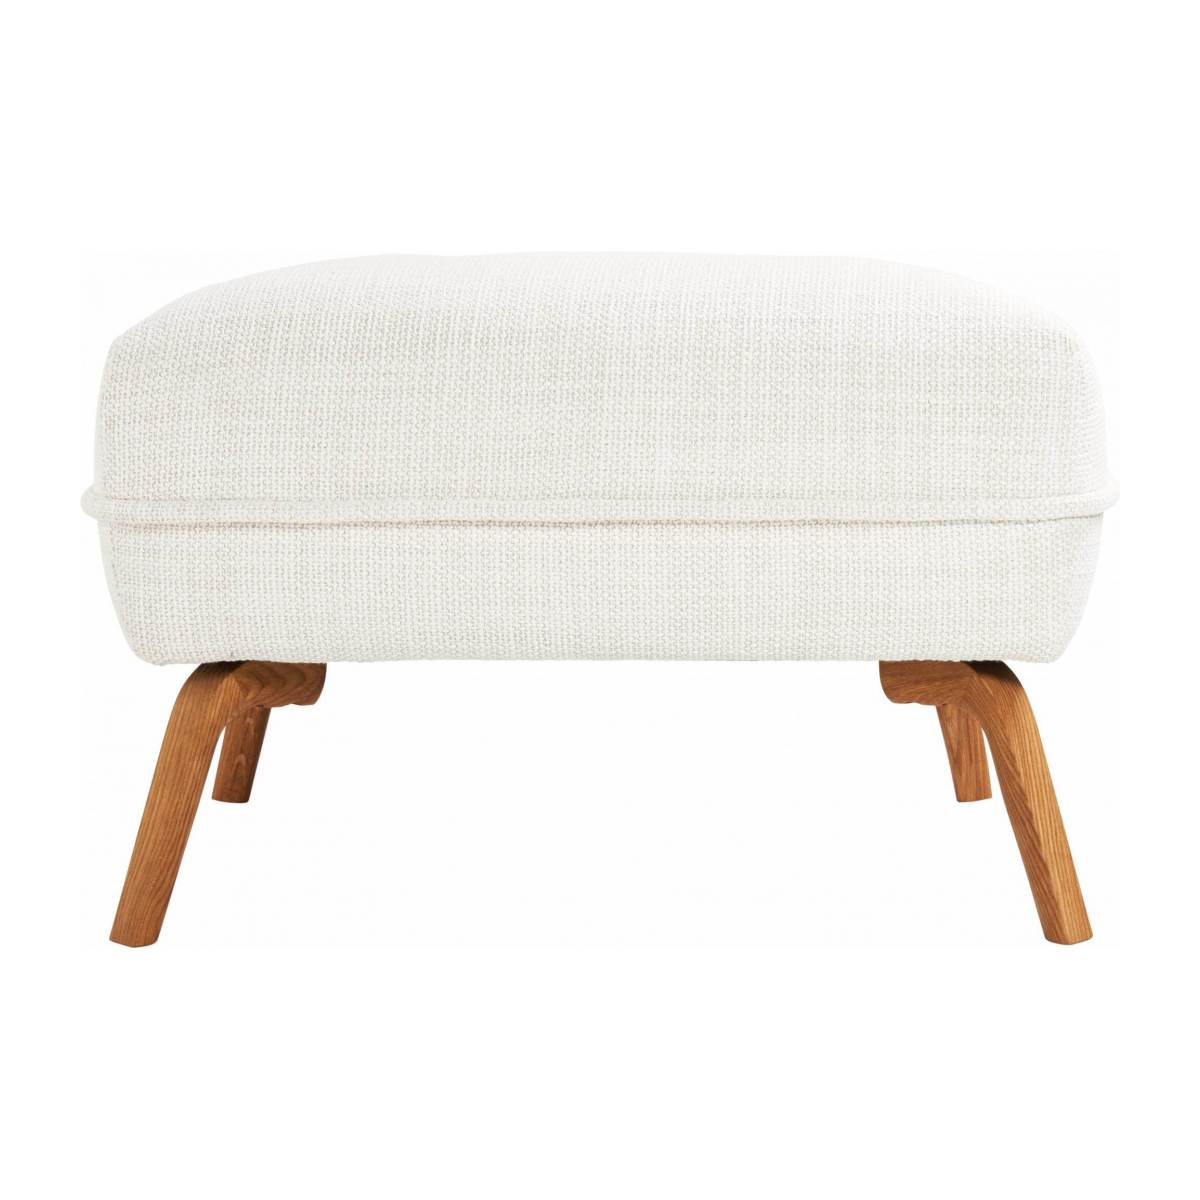 Footstool in Fasoli fabric, snow white and oak legs n°1